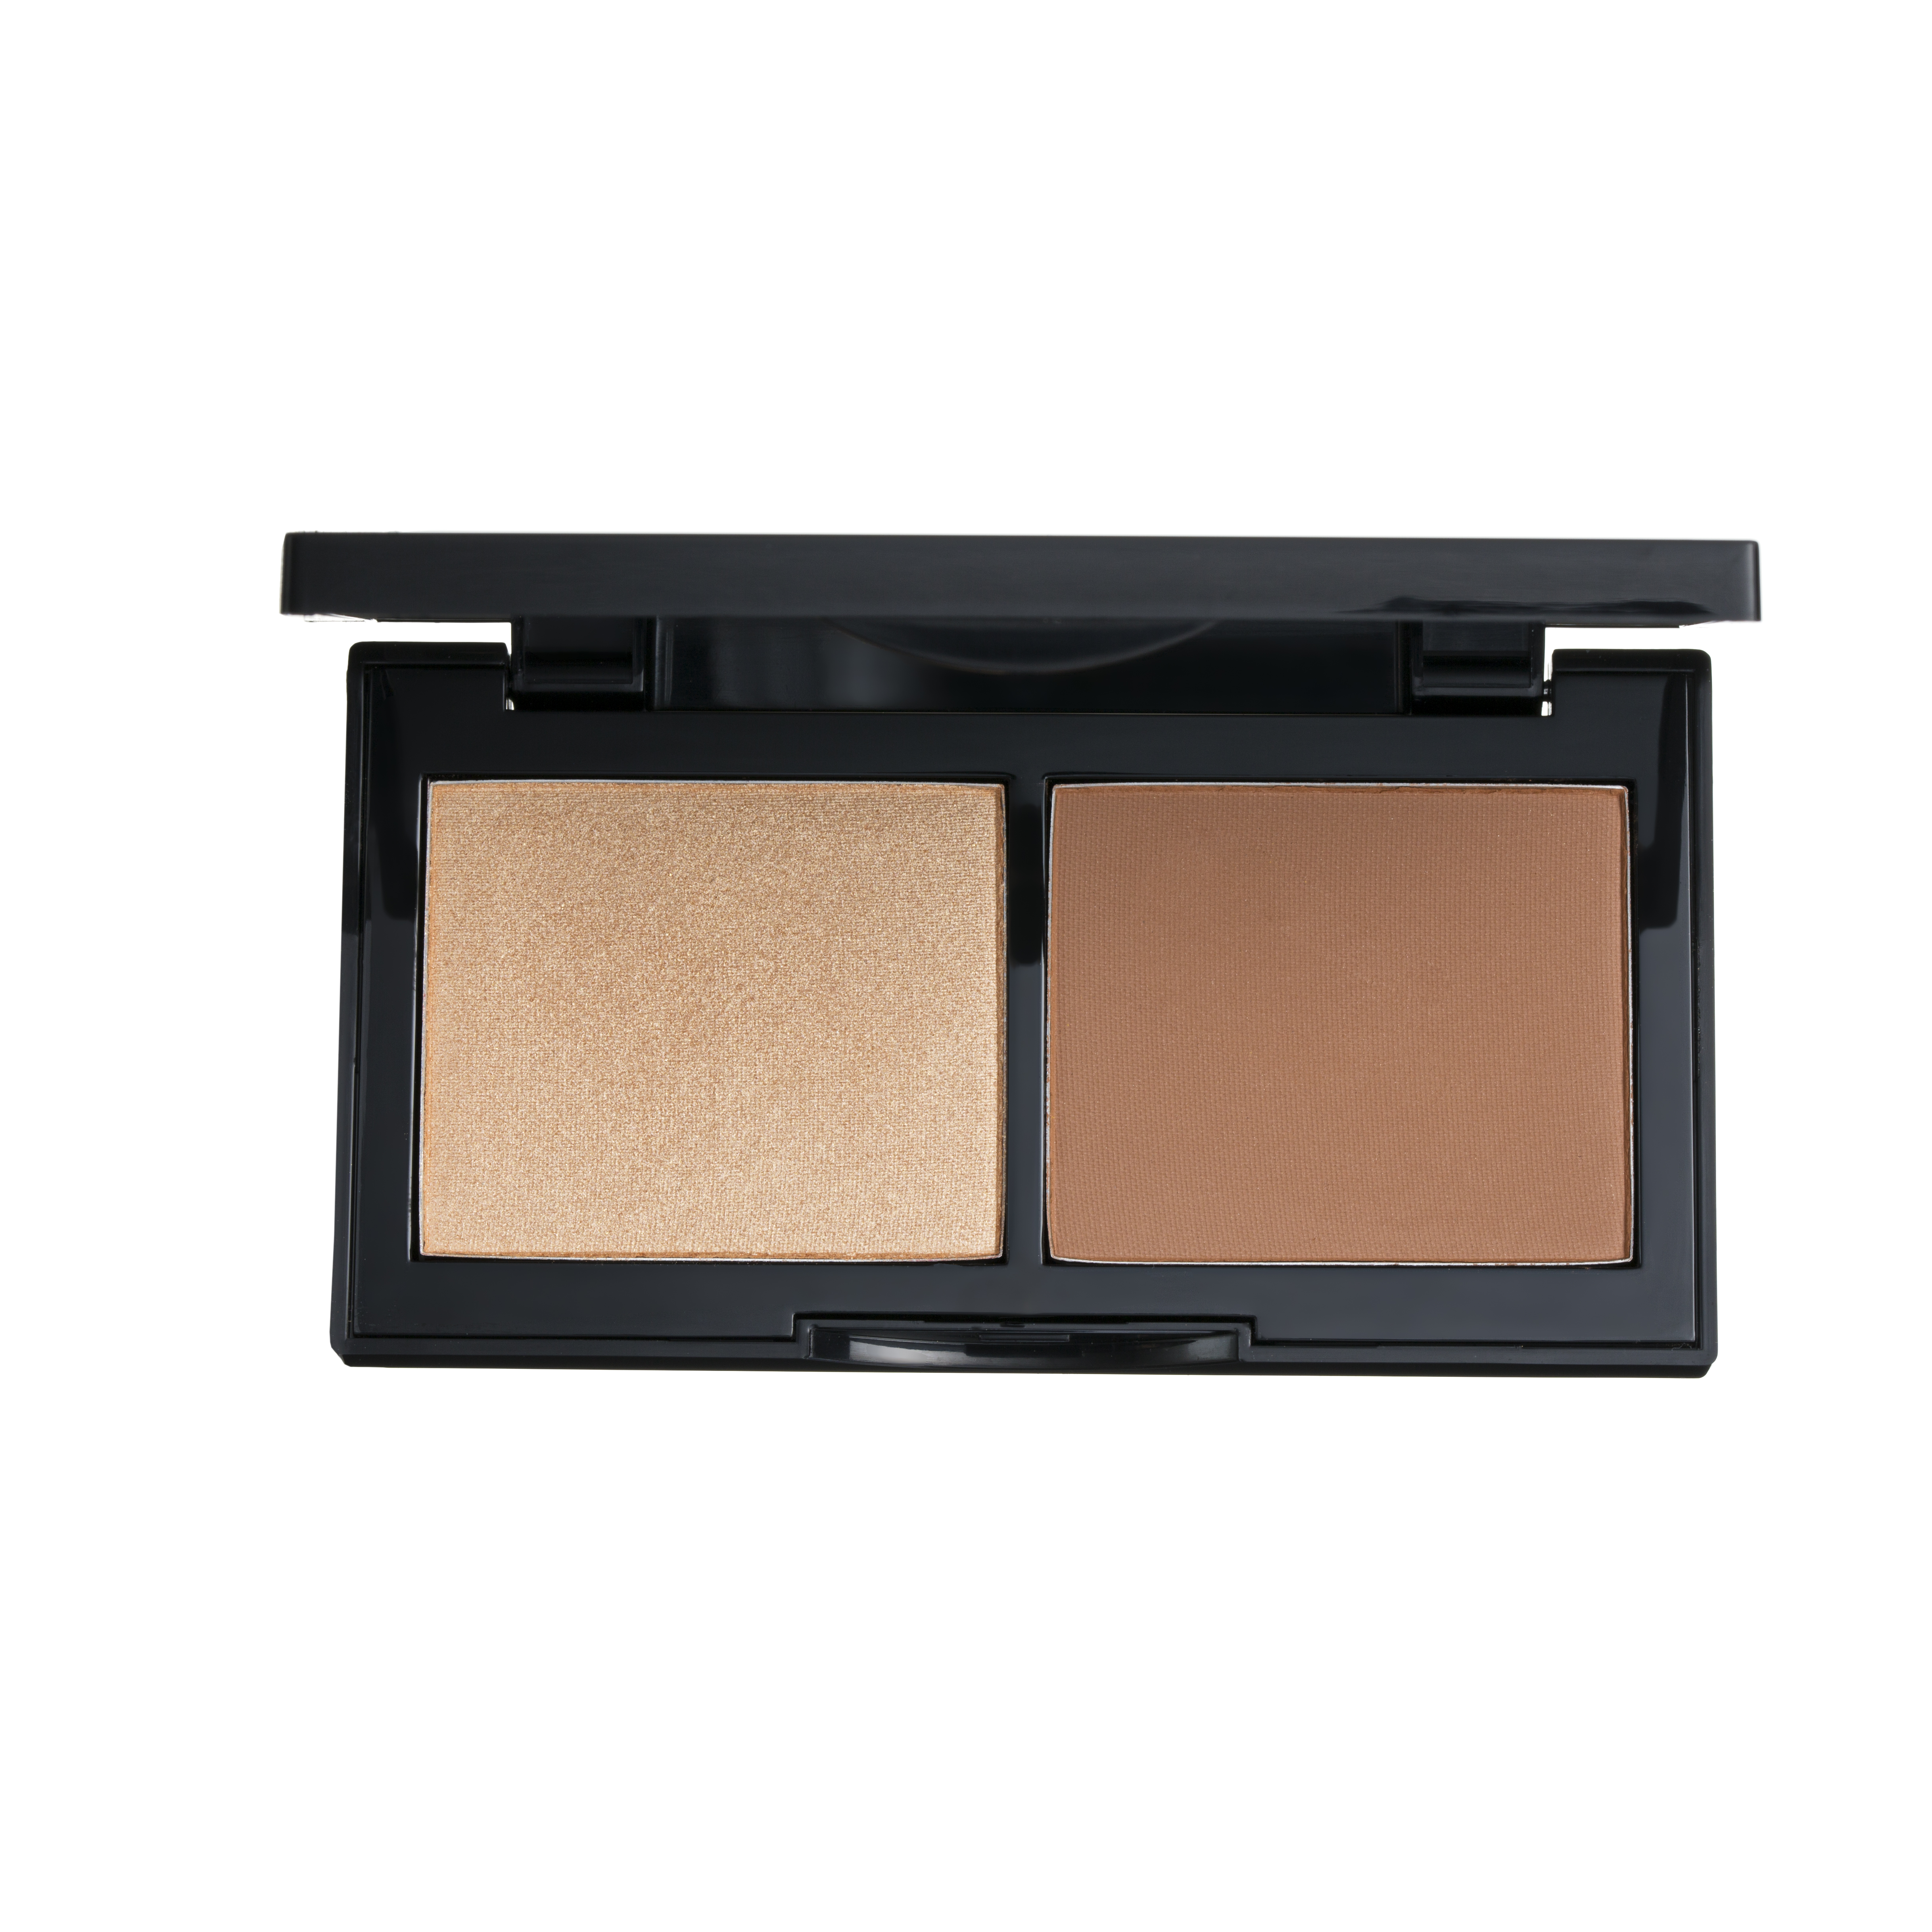 Highlighting & Bronzing Duo